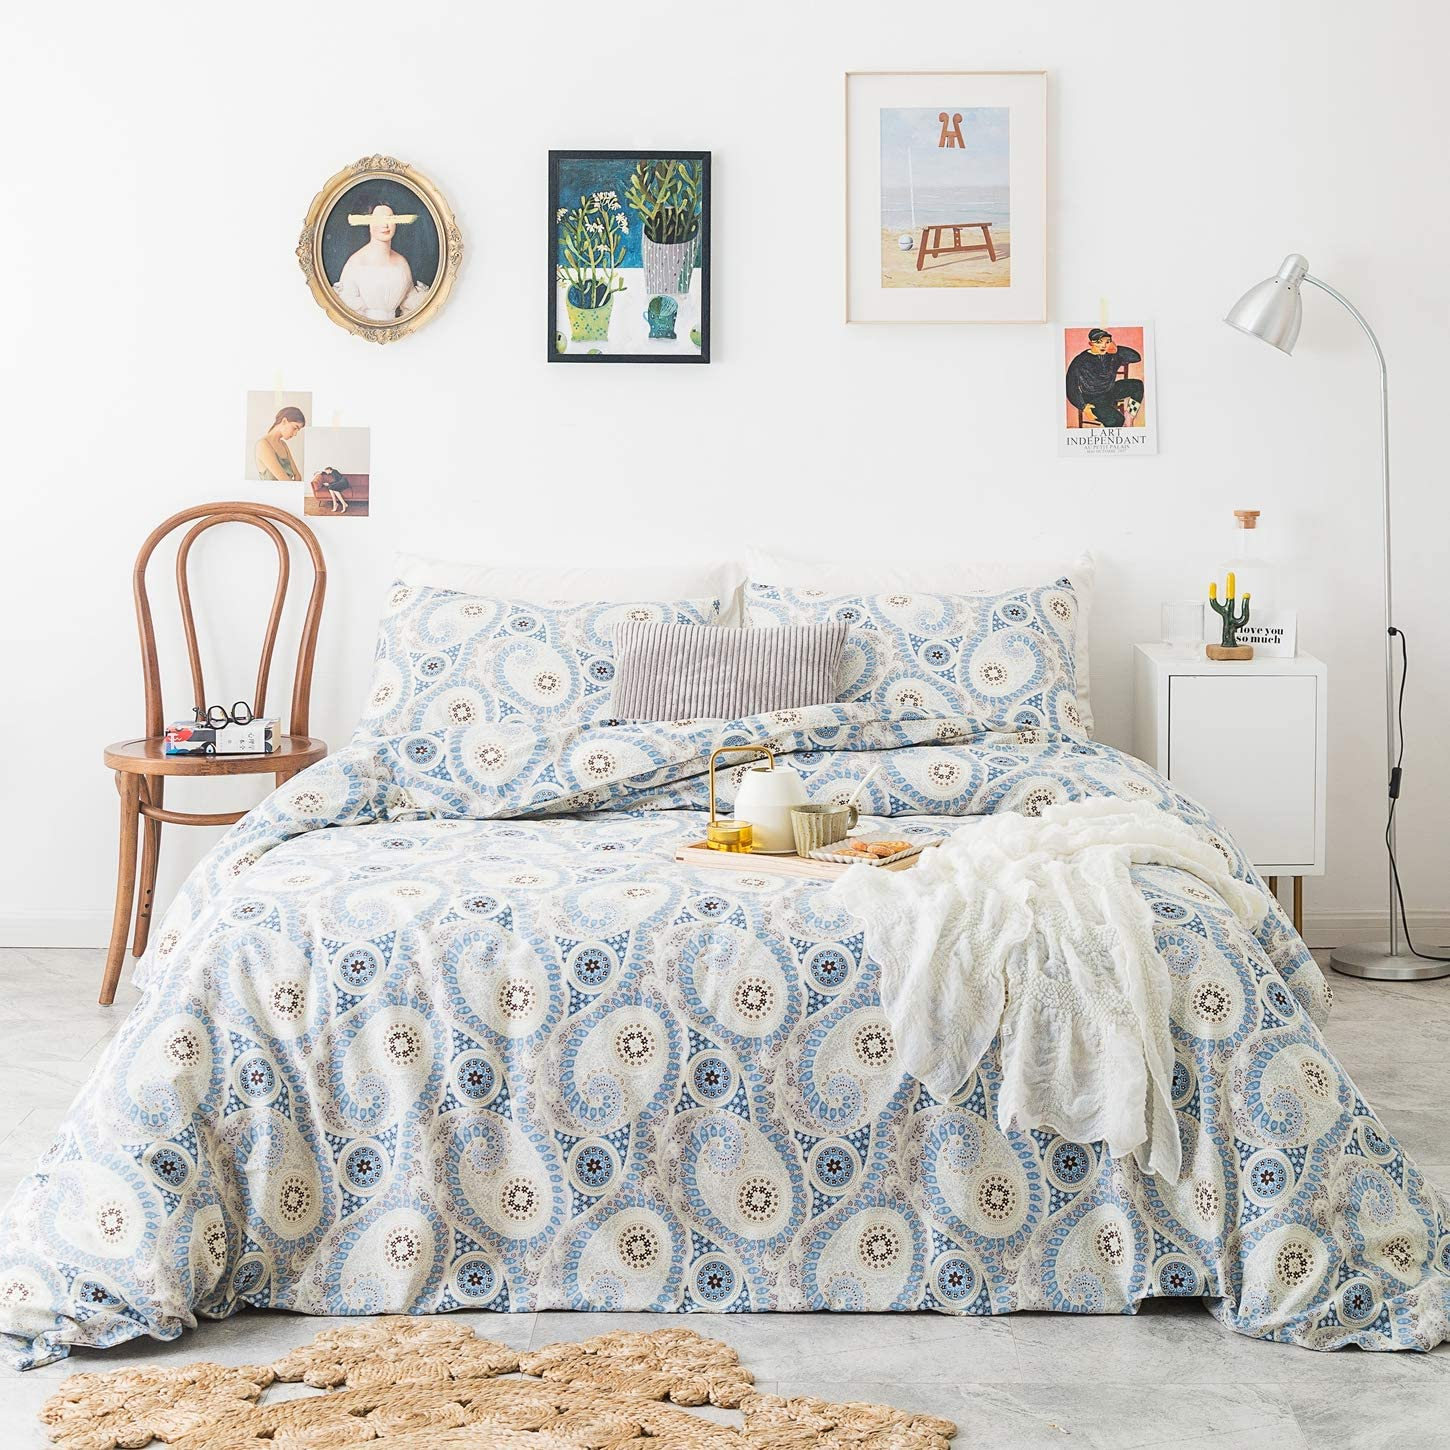 SUSYBAO 3 Pieces Duvet Cover Set 100% Natural Cotton Blue King Size Paisley Geometric Bedding Set 1 Exotic Bohemian Duvet Cover with Zipper Ties 2 Pillow Cases Luxury Quality Soft Comfortable Durable